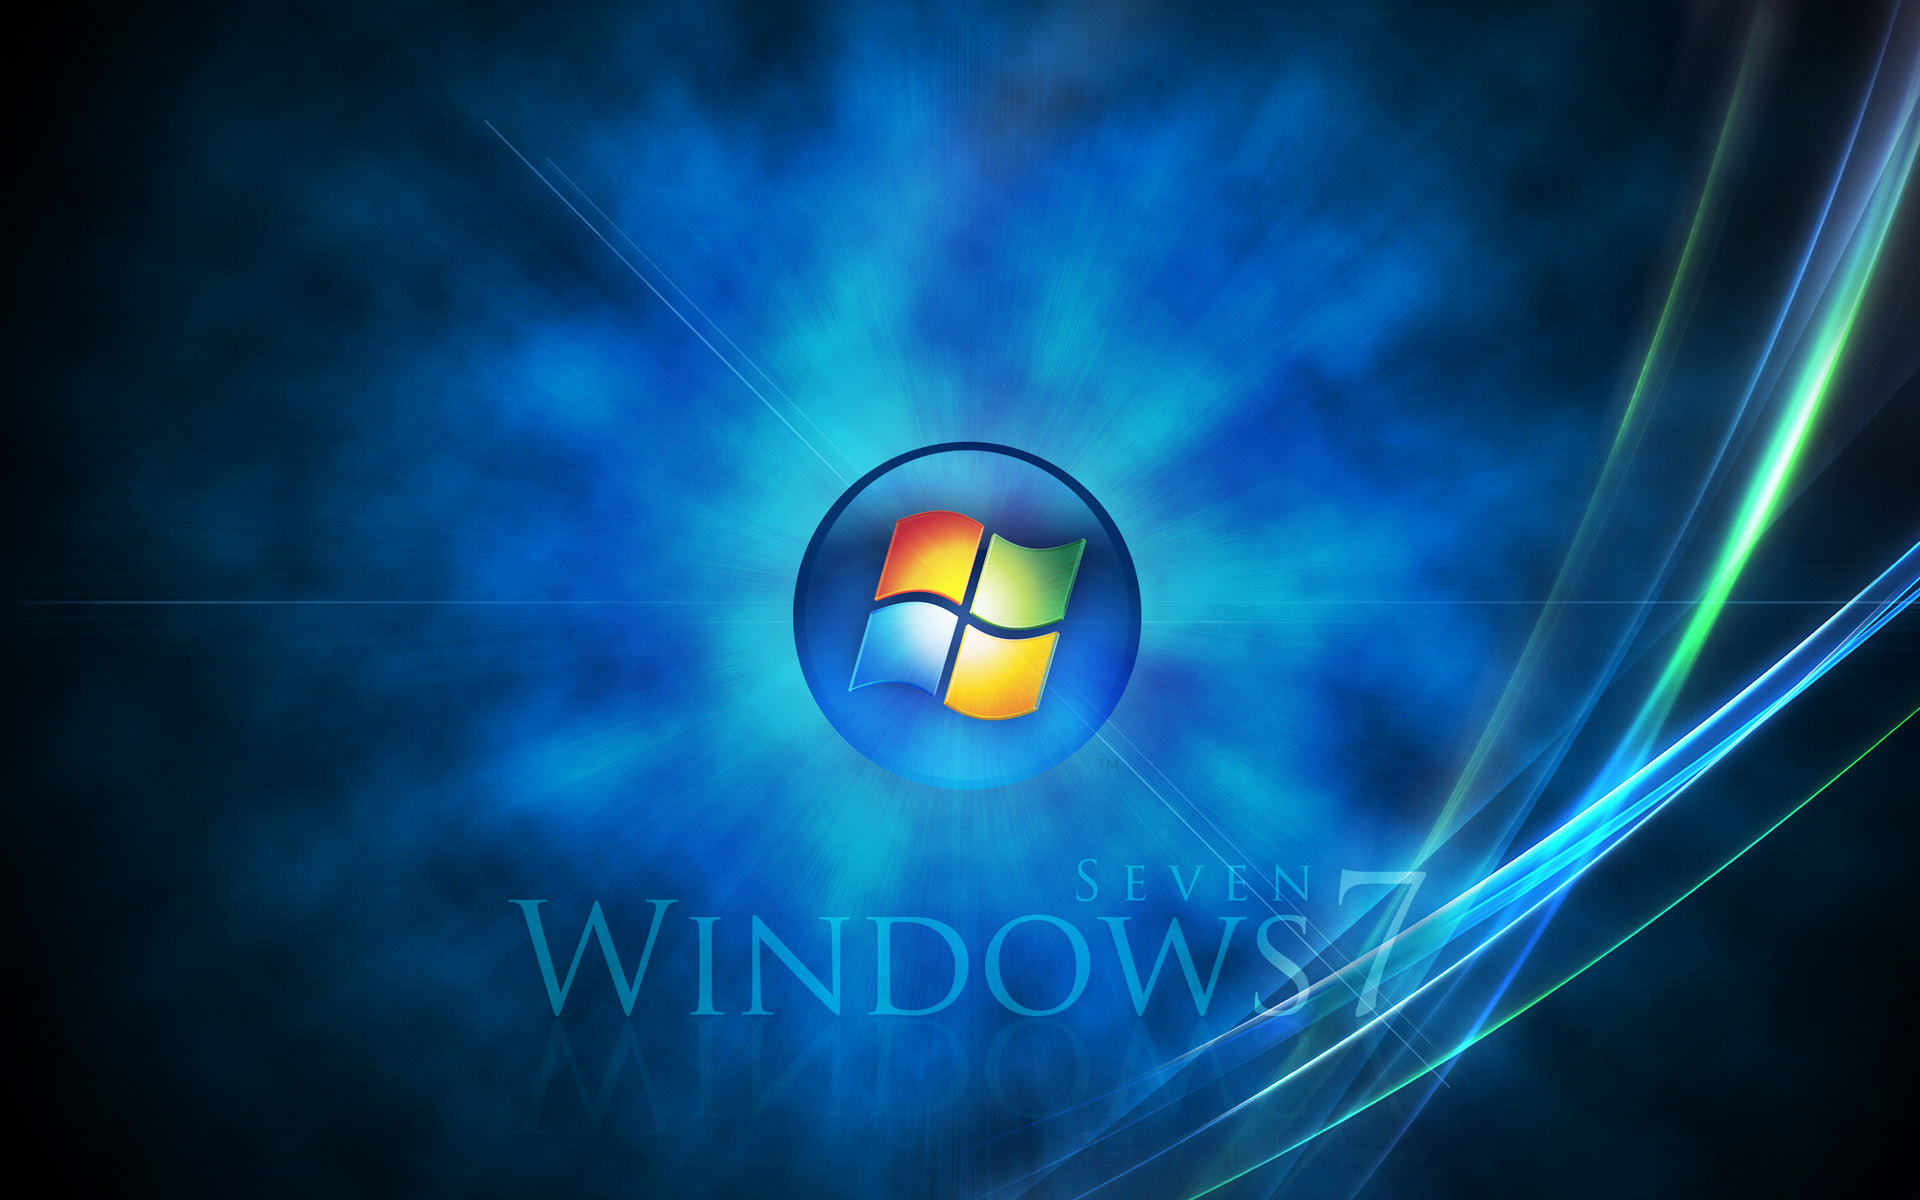 Windows Desktop Wallpaper 12440